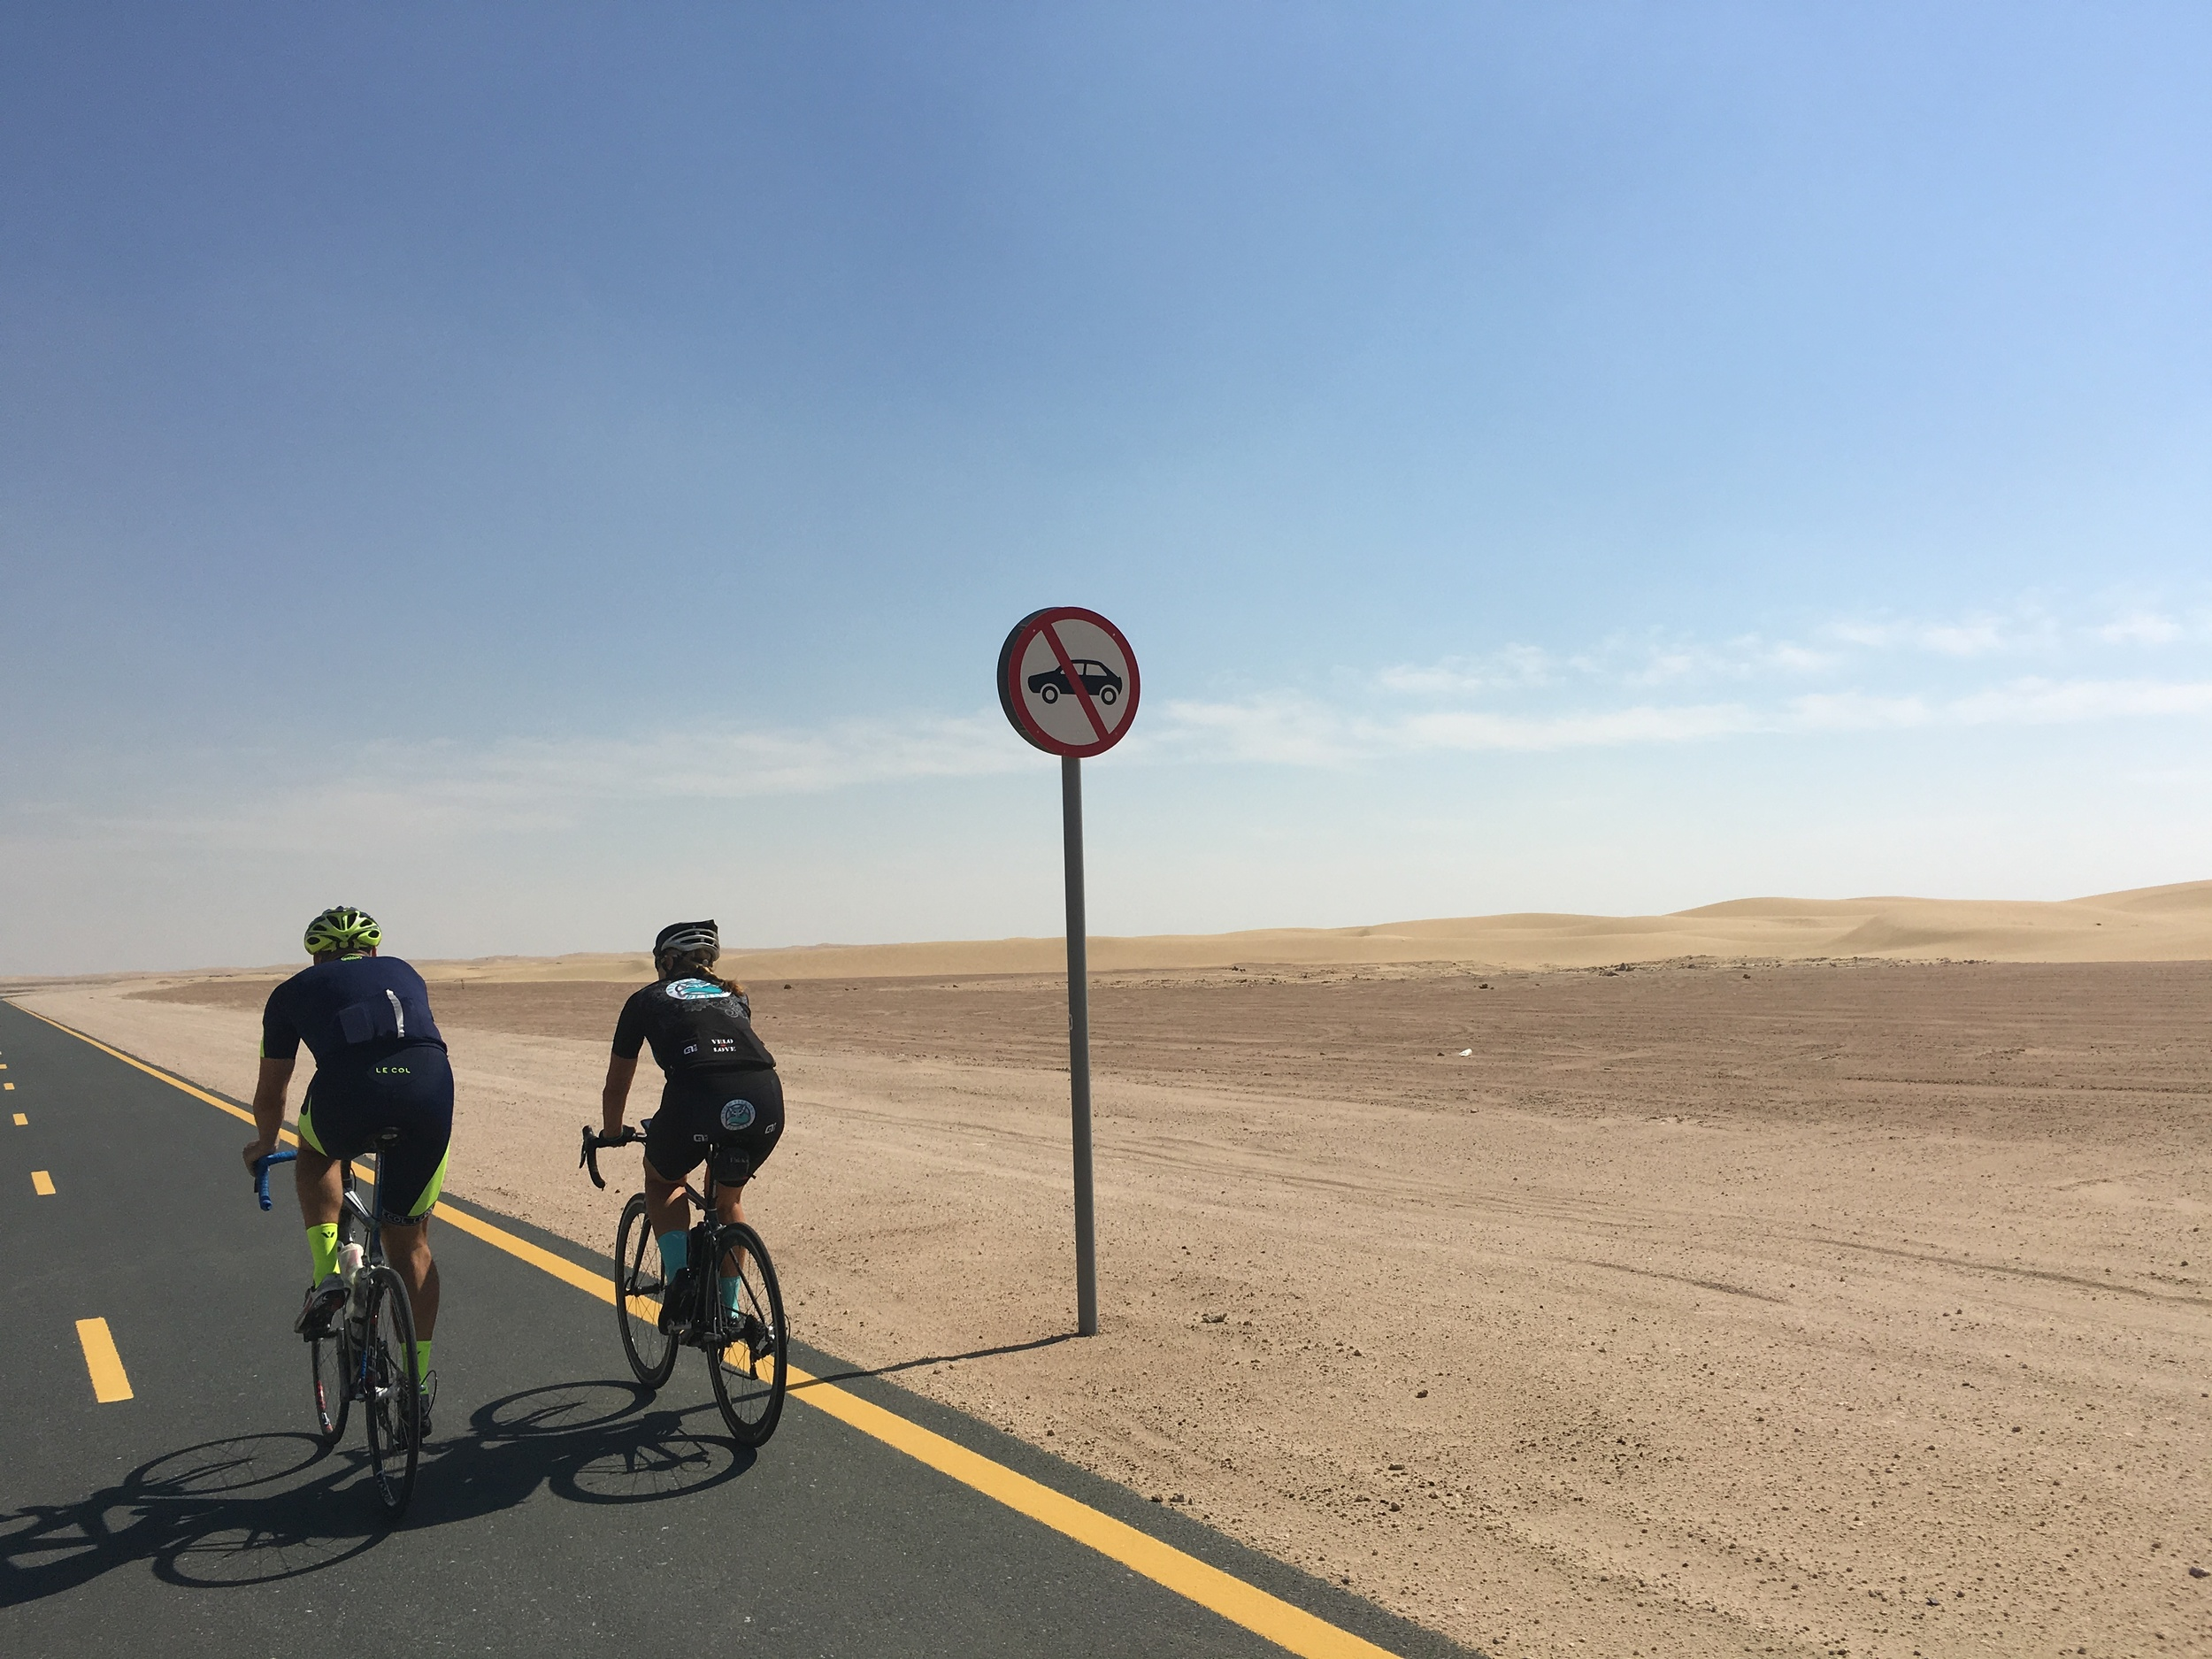 Cars are banned on the cycle track at Al Qudra